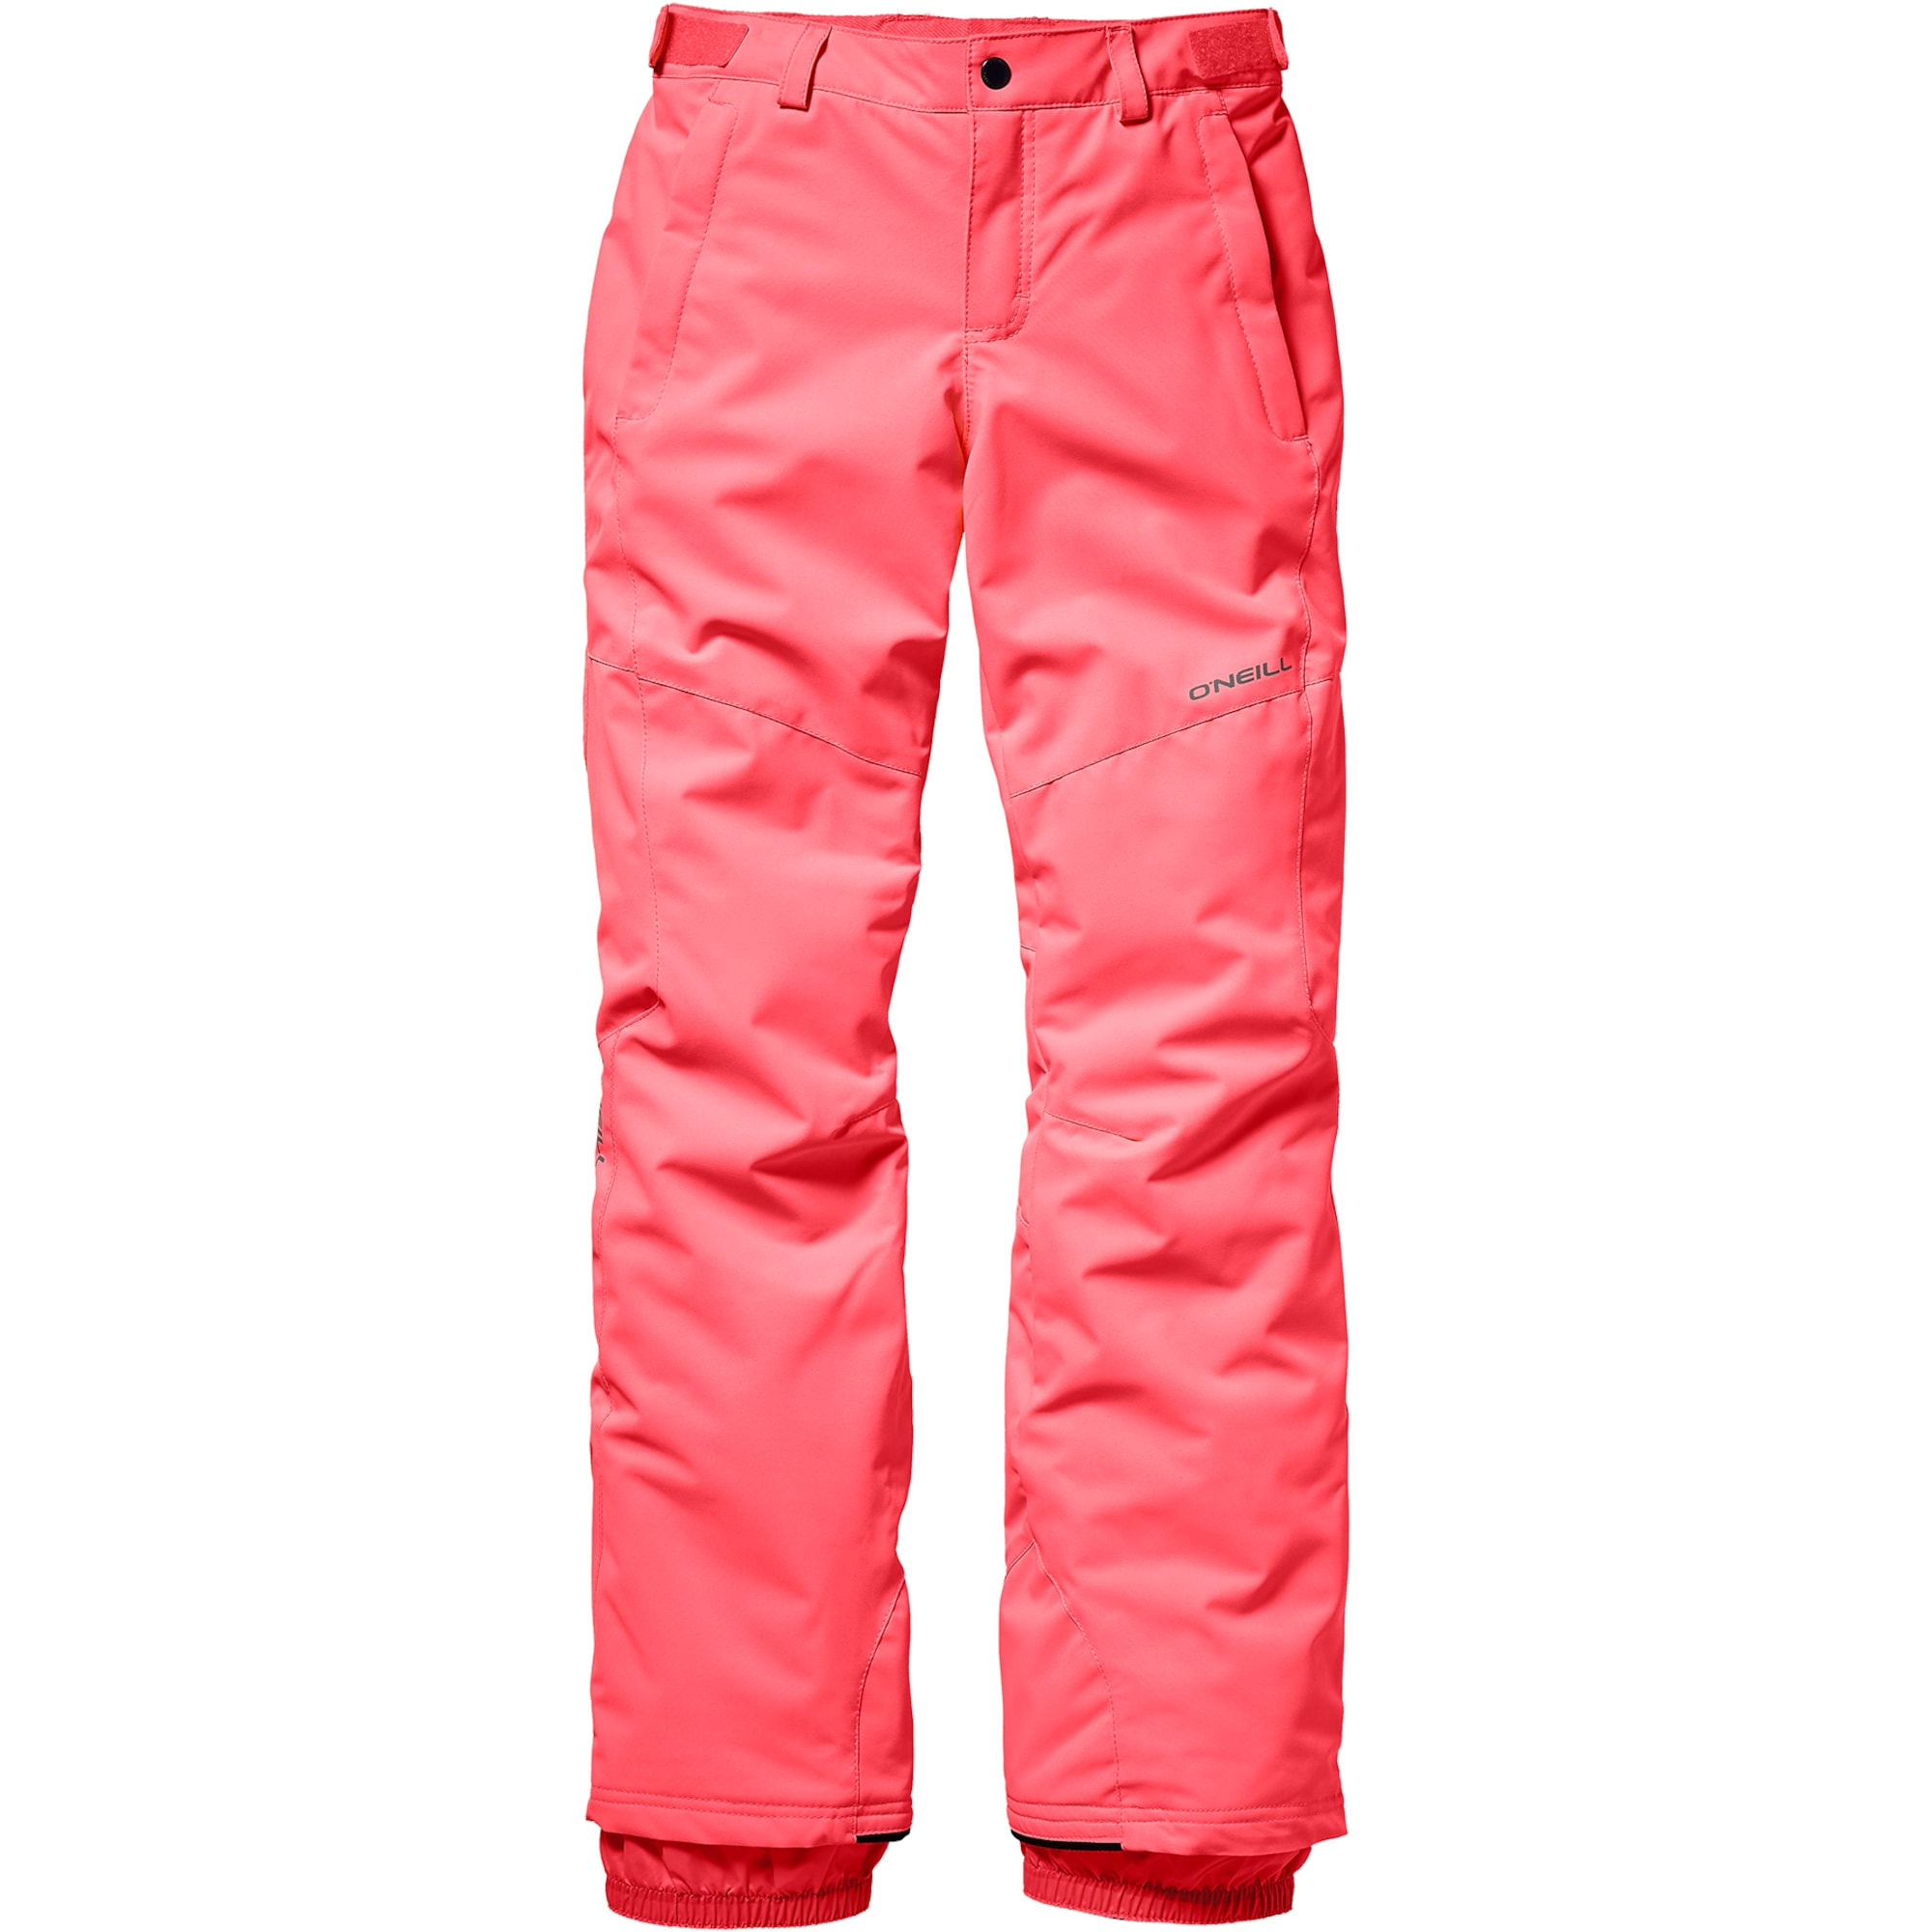 ONEILL Outdoorové kalhoty Pg Charm pink O'NEILL